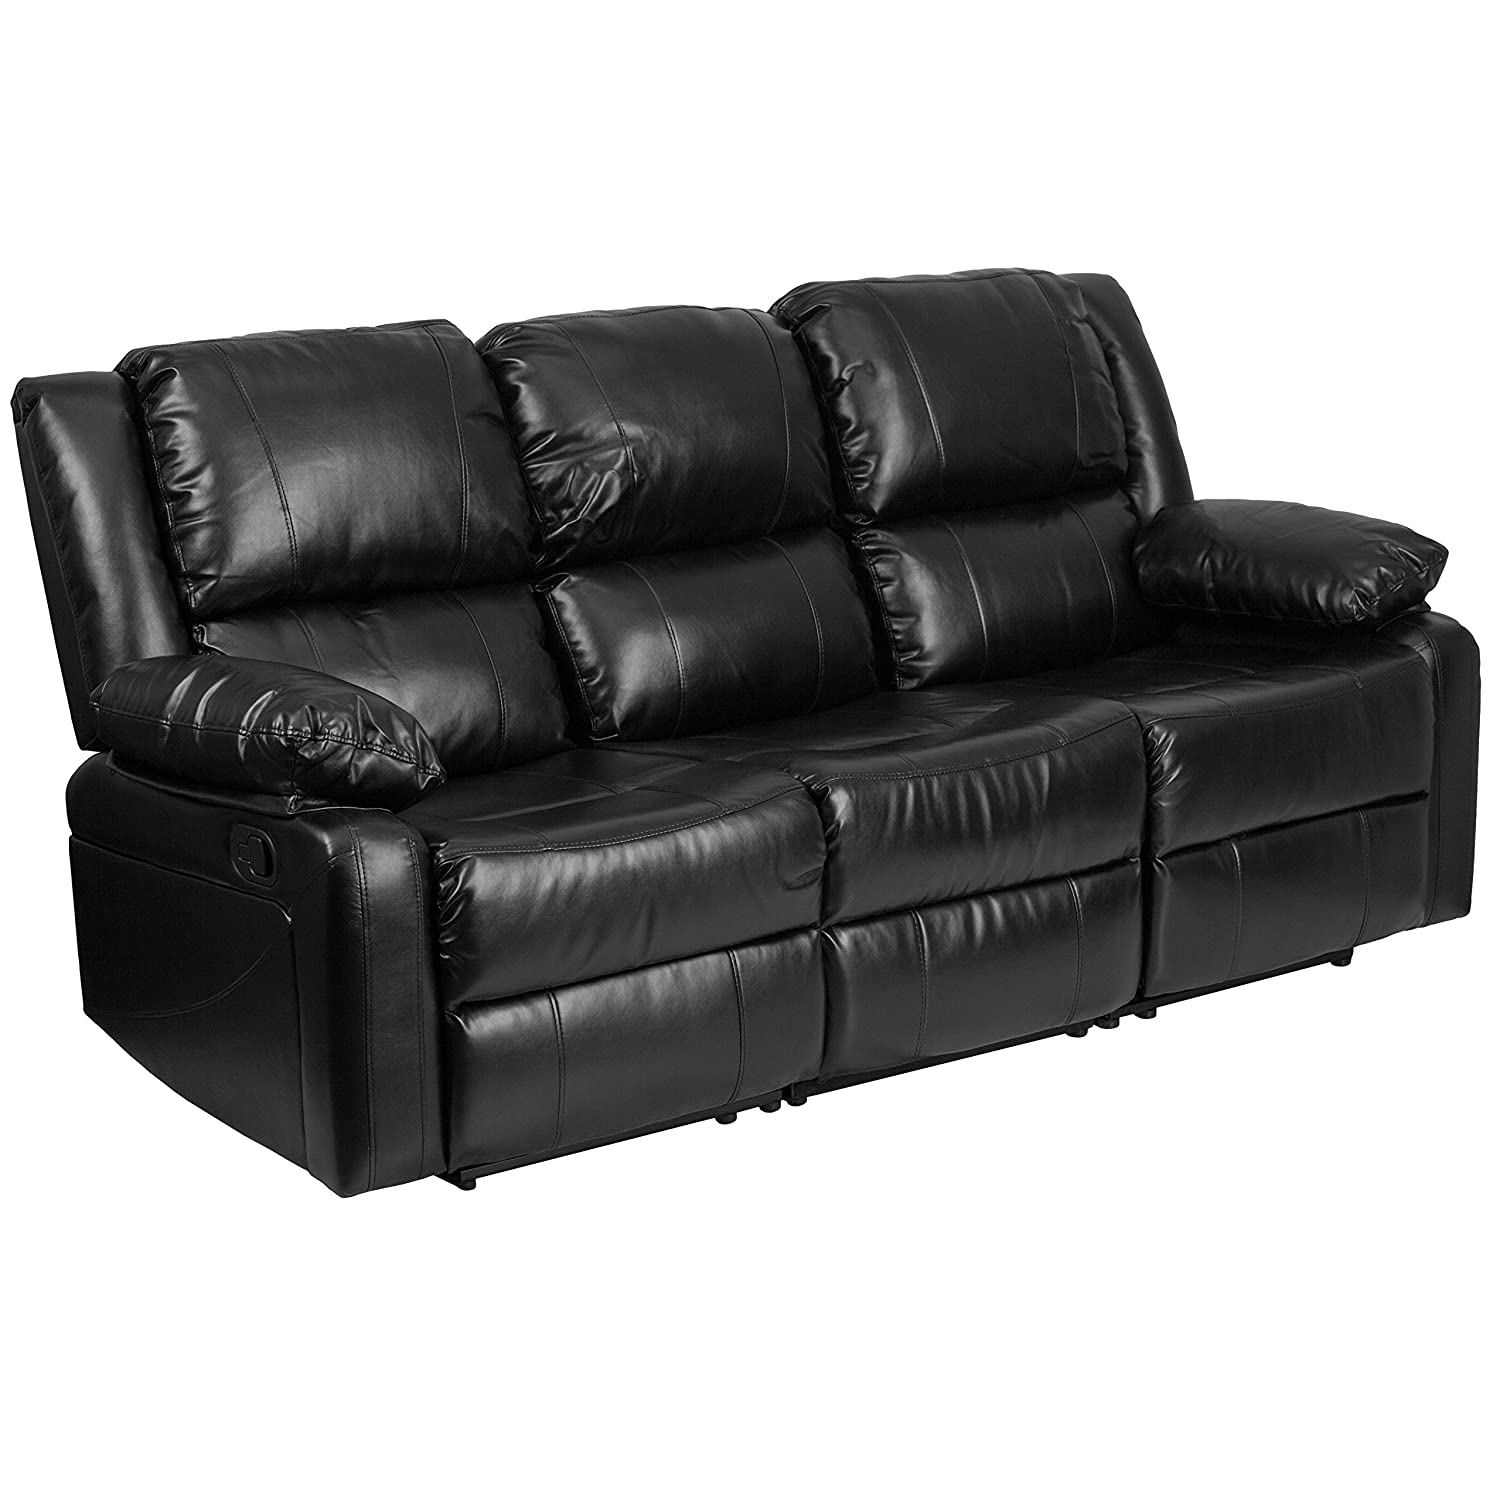 Amazoncom Flash Furniture Harmony Series Black Leather Sofa With - Leather sofa reclining